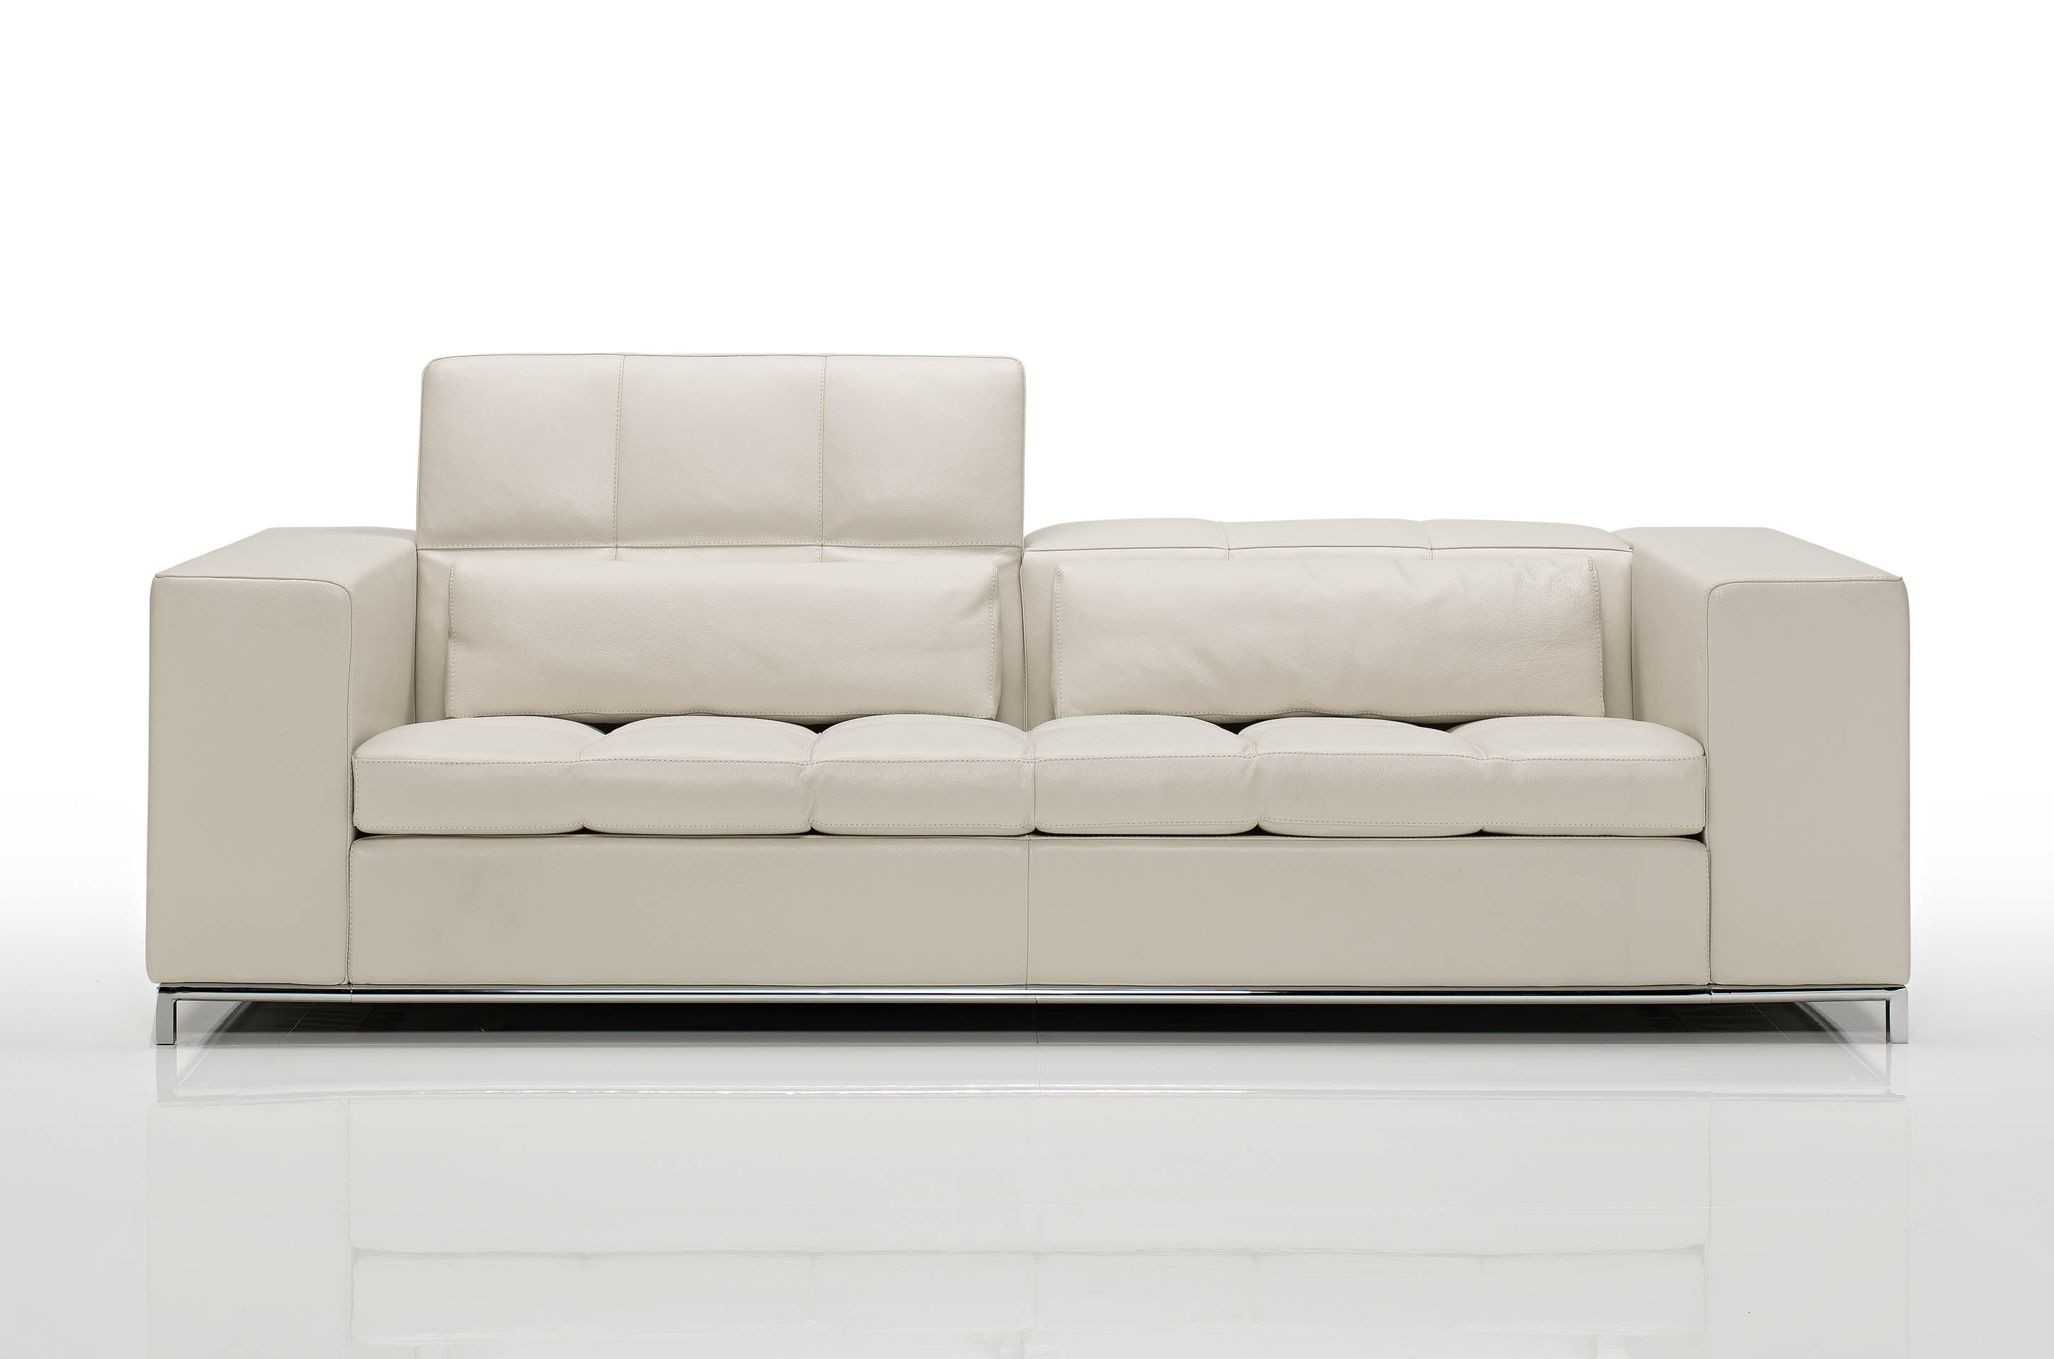 luxury modern sectional sofas photo - 2